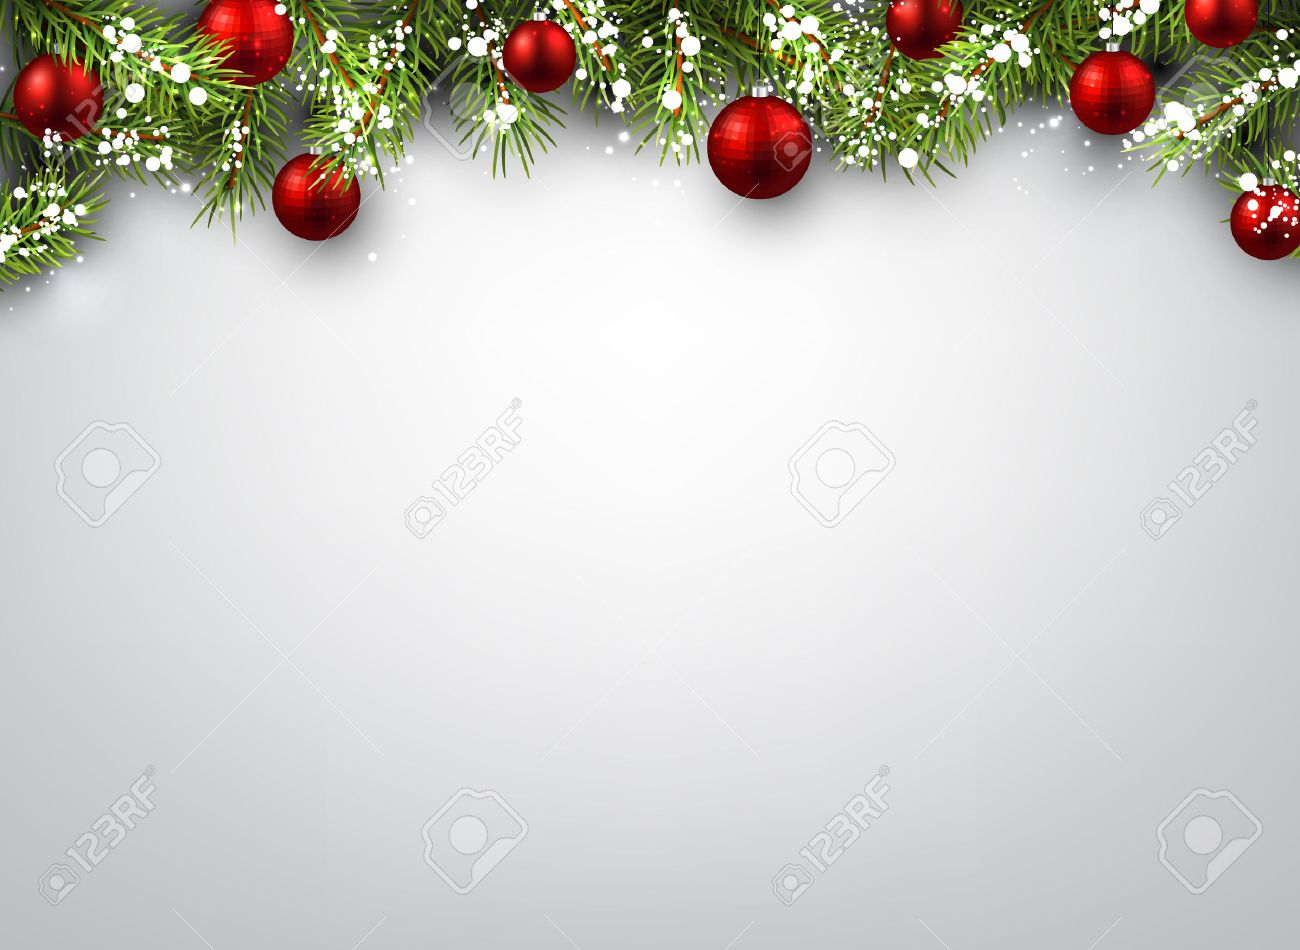 Christmas Background With Fir Branches And Red Balls. Royalty Free ...